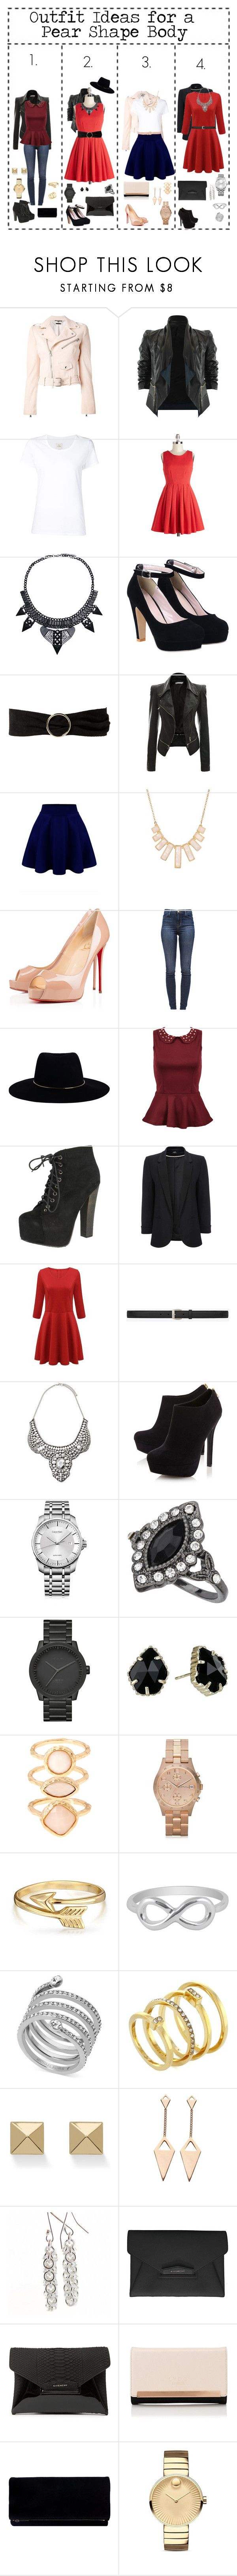 """Outfit Ideas For  Pear Shape Body"" by happyrandomness ❤ liked on Polyvore featuring Alexander McQueen, Max 'n Chester, MANGO, Rivka Friedman, Christian Louboutin, J Brand, Zimmermann, Breckelle's, Wallis and Yves Saint Laurent"